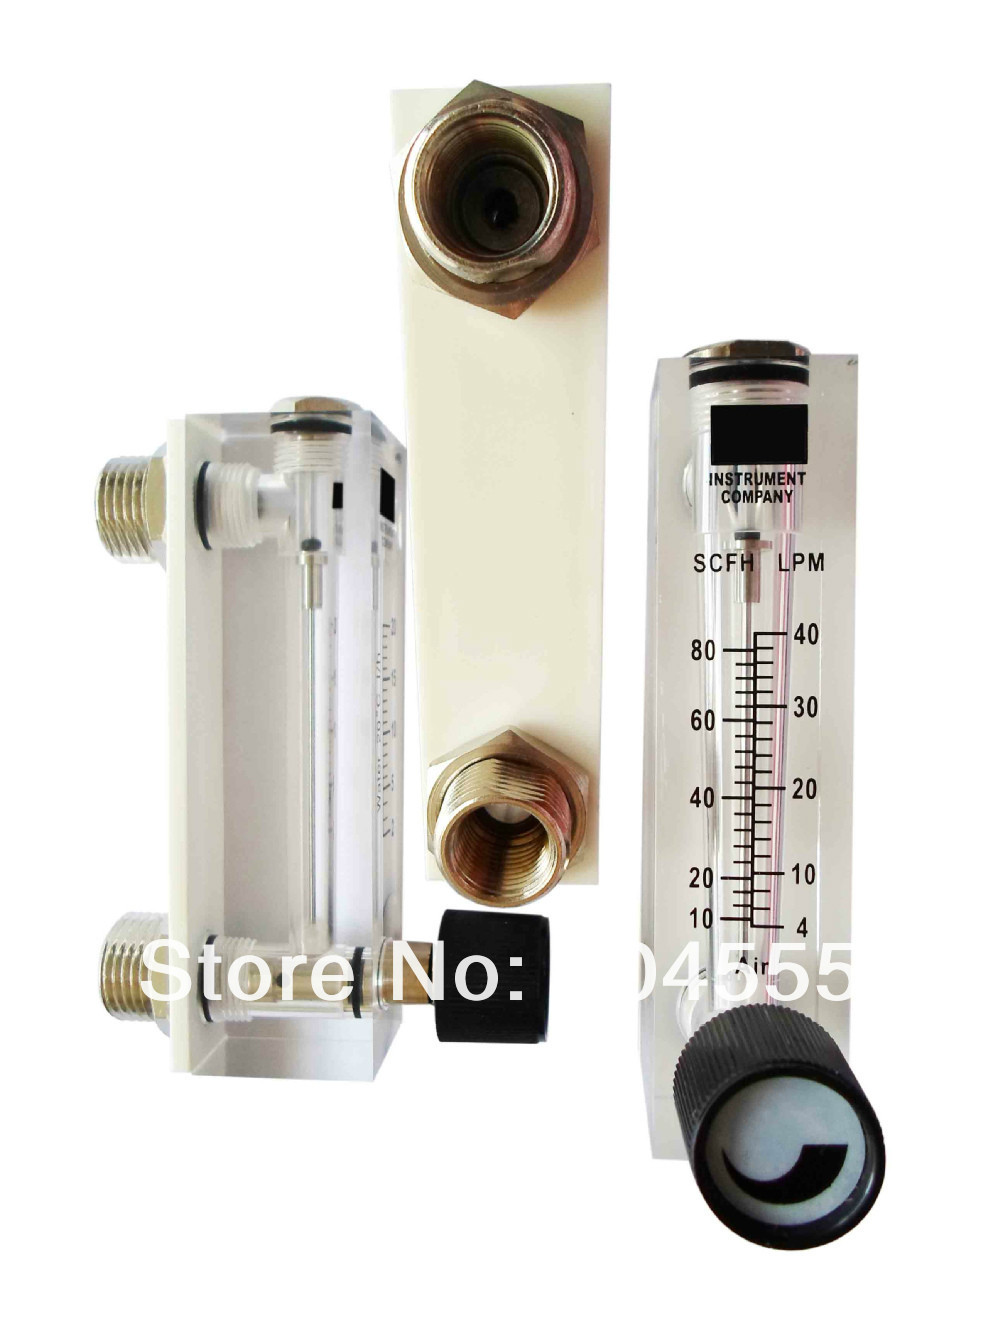 Panel water flow controller water flow meter liquid flowmeter with adjustable valve 2-20L/Hour water flow meter lzm 6t 0 5 3lpm 1 6scfh panel acrylic type flowmeter flow meter with adjust valve brass fitting female